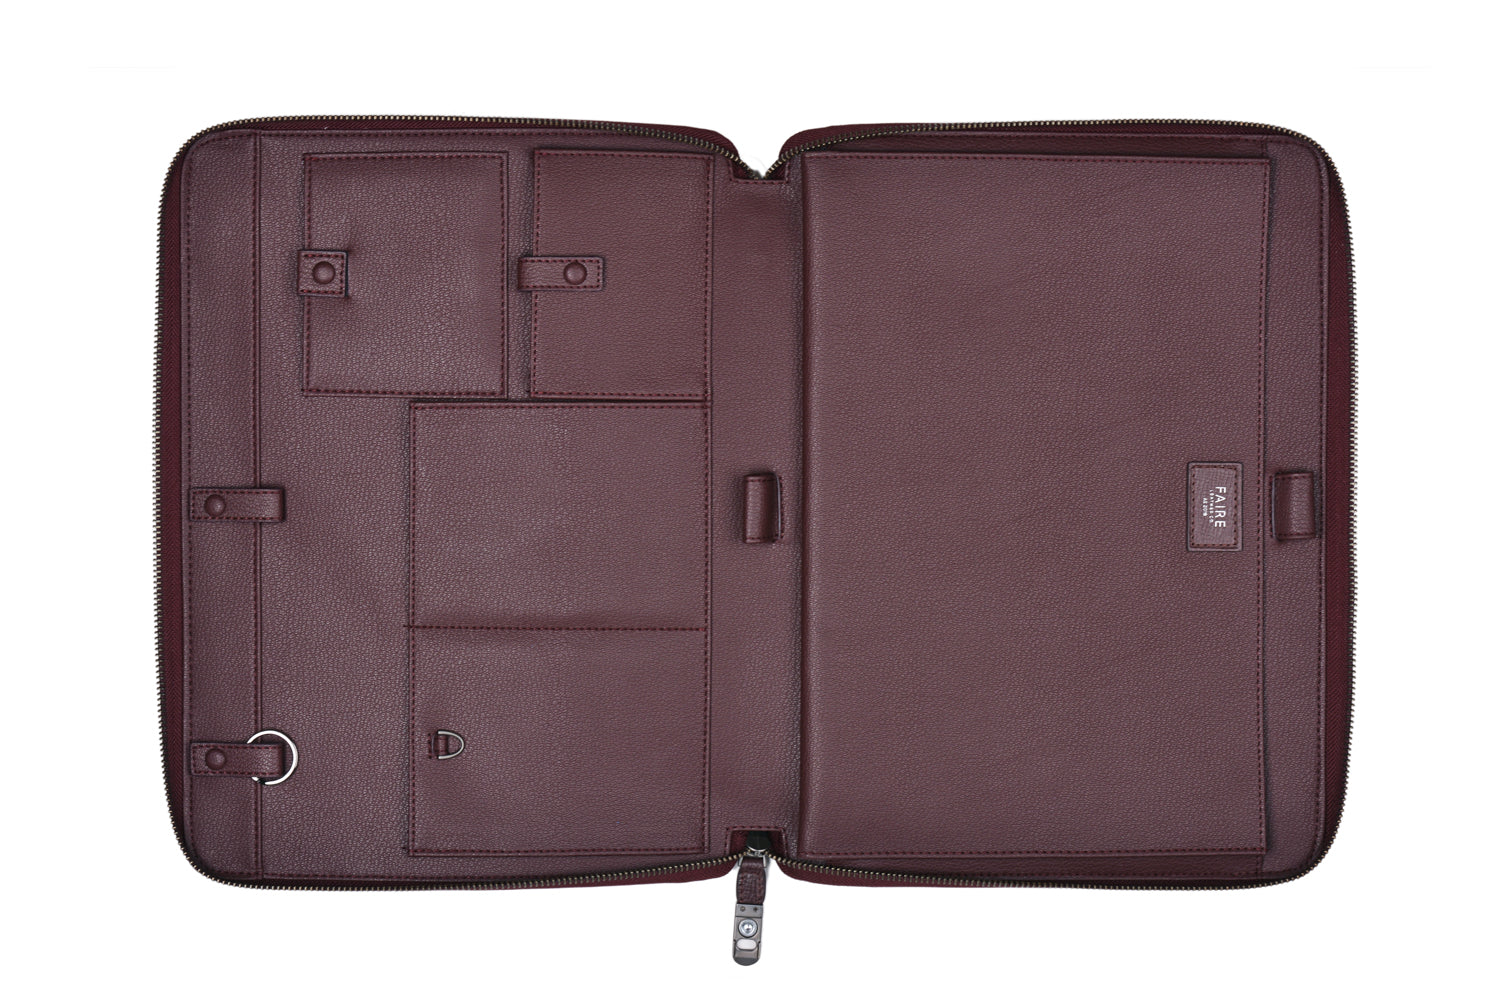 Bond VT Everyday Padfolio (AE 2018) | Leather Tech Organizer